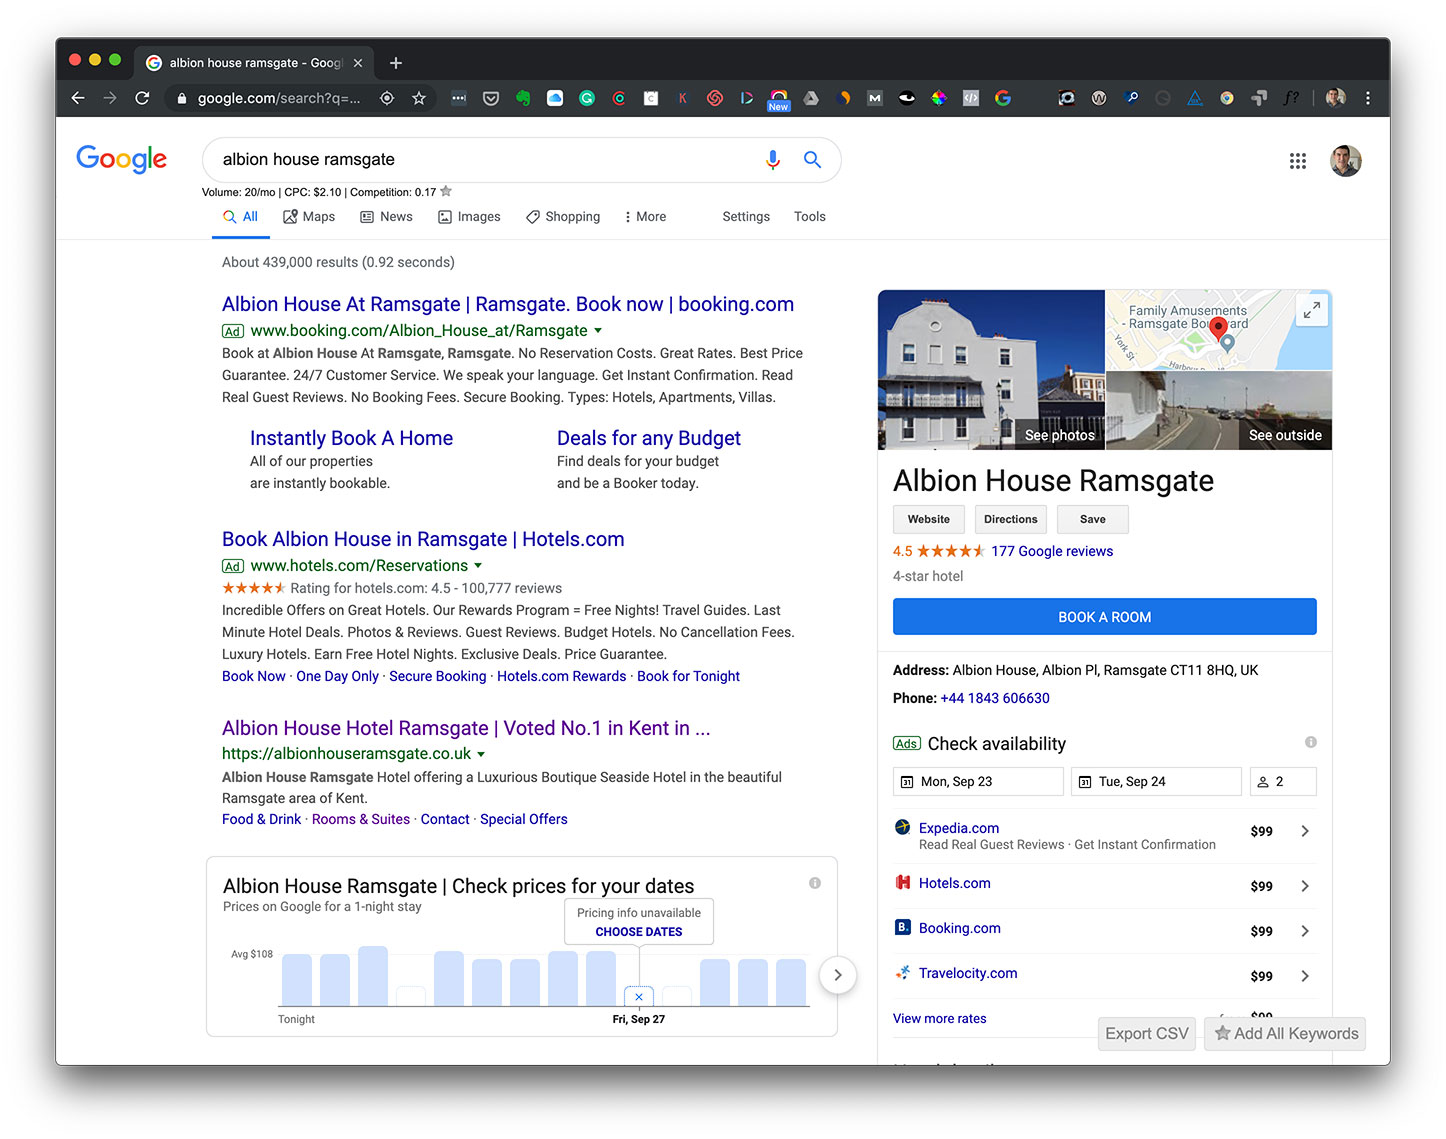 Screenshot of Google search results for Albion House Ramsgate